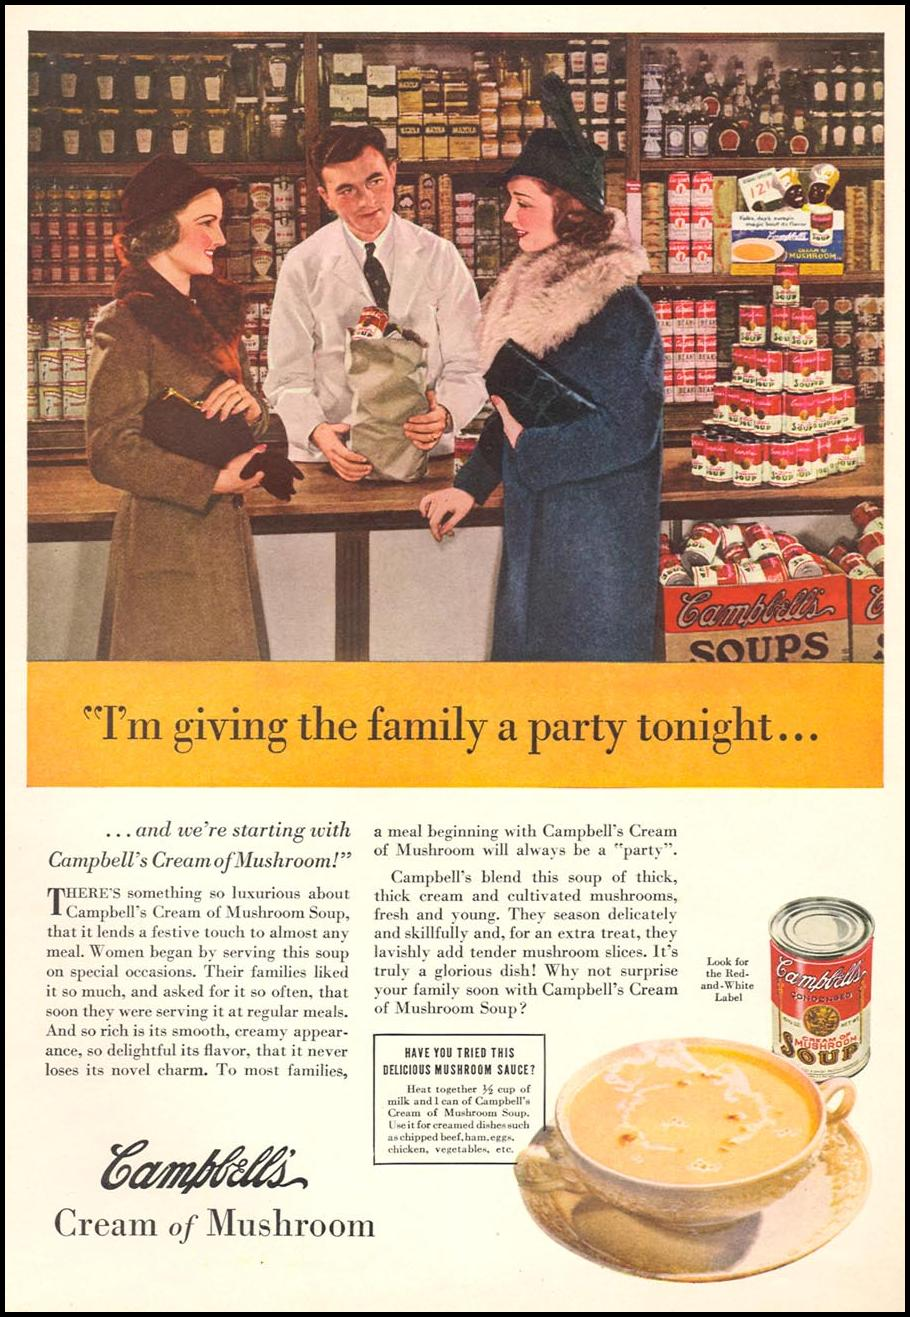 CAMPBELL'S CREAM OF MUSHROOM SOUP WOMAN'S DAY 03/01/1939